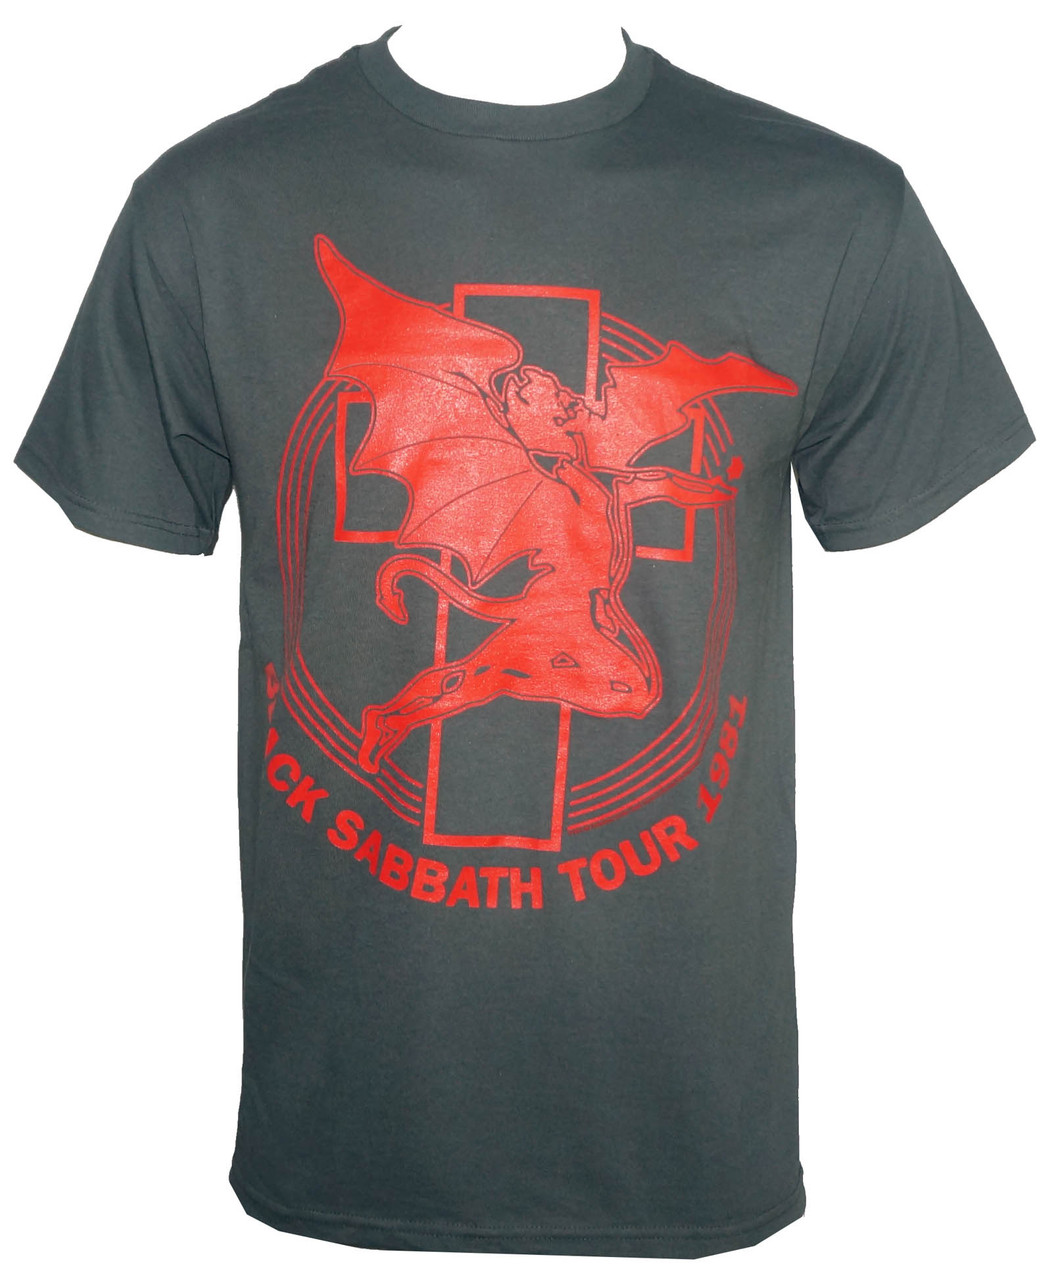 https://d3d71ba2asa5oz.cloudfront.net/12013655/images/bsh34191080_parent%20blak%20sabbath%20band%20tur%201981%20shirt.jpg